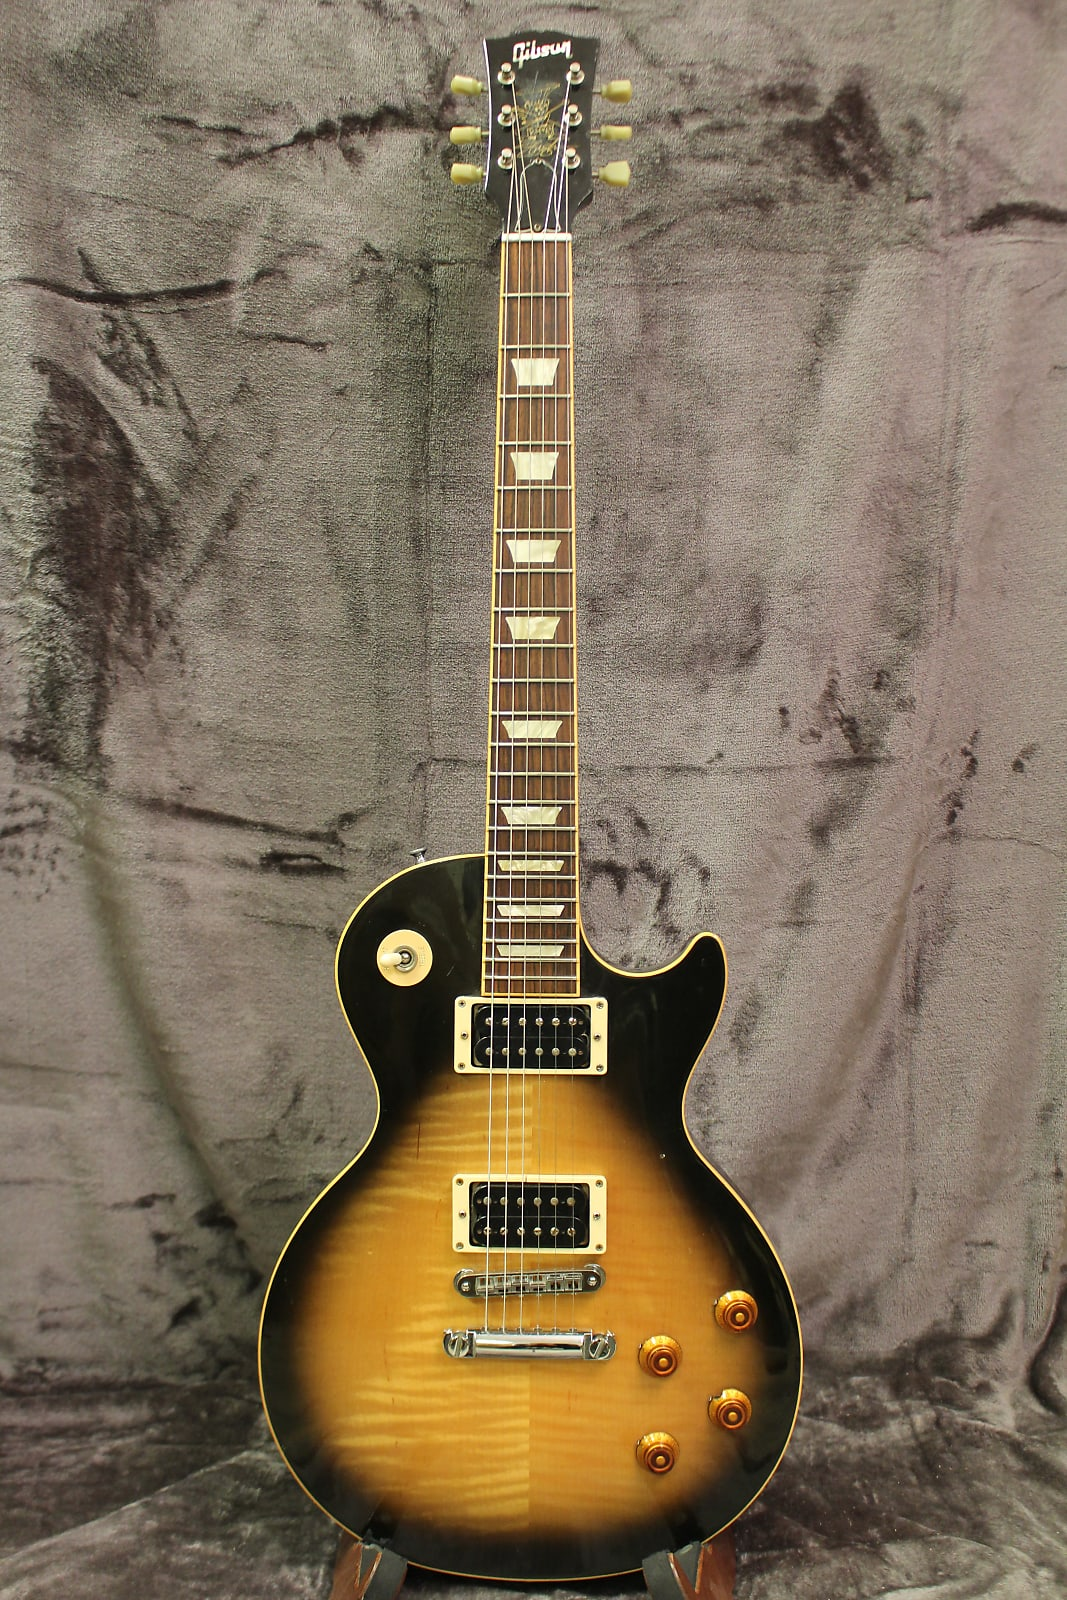 Gibson Slash Signature Les Paul Standard 2008 Antique Vintage Sunburst